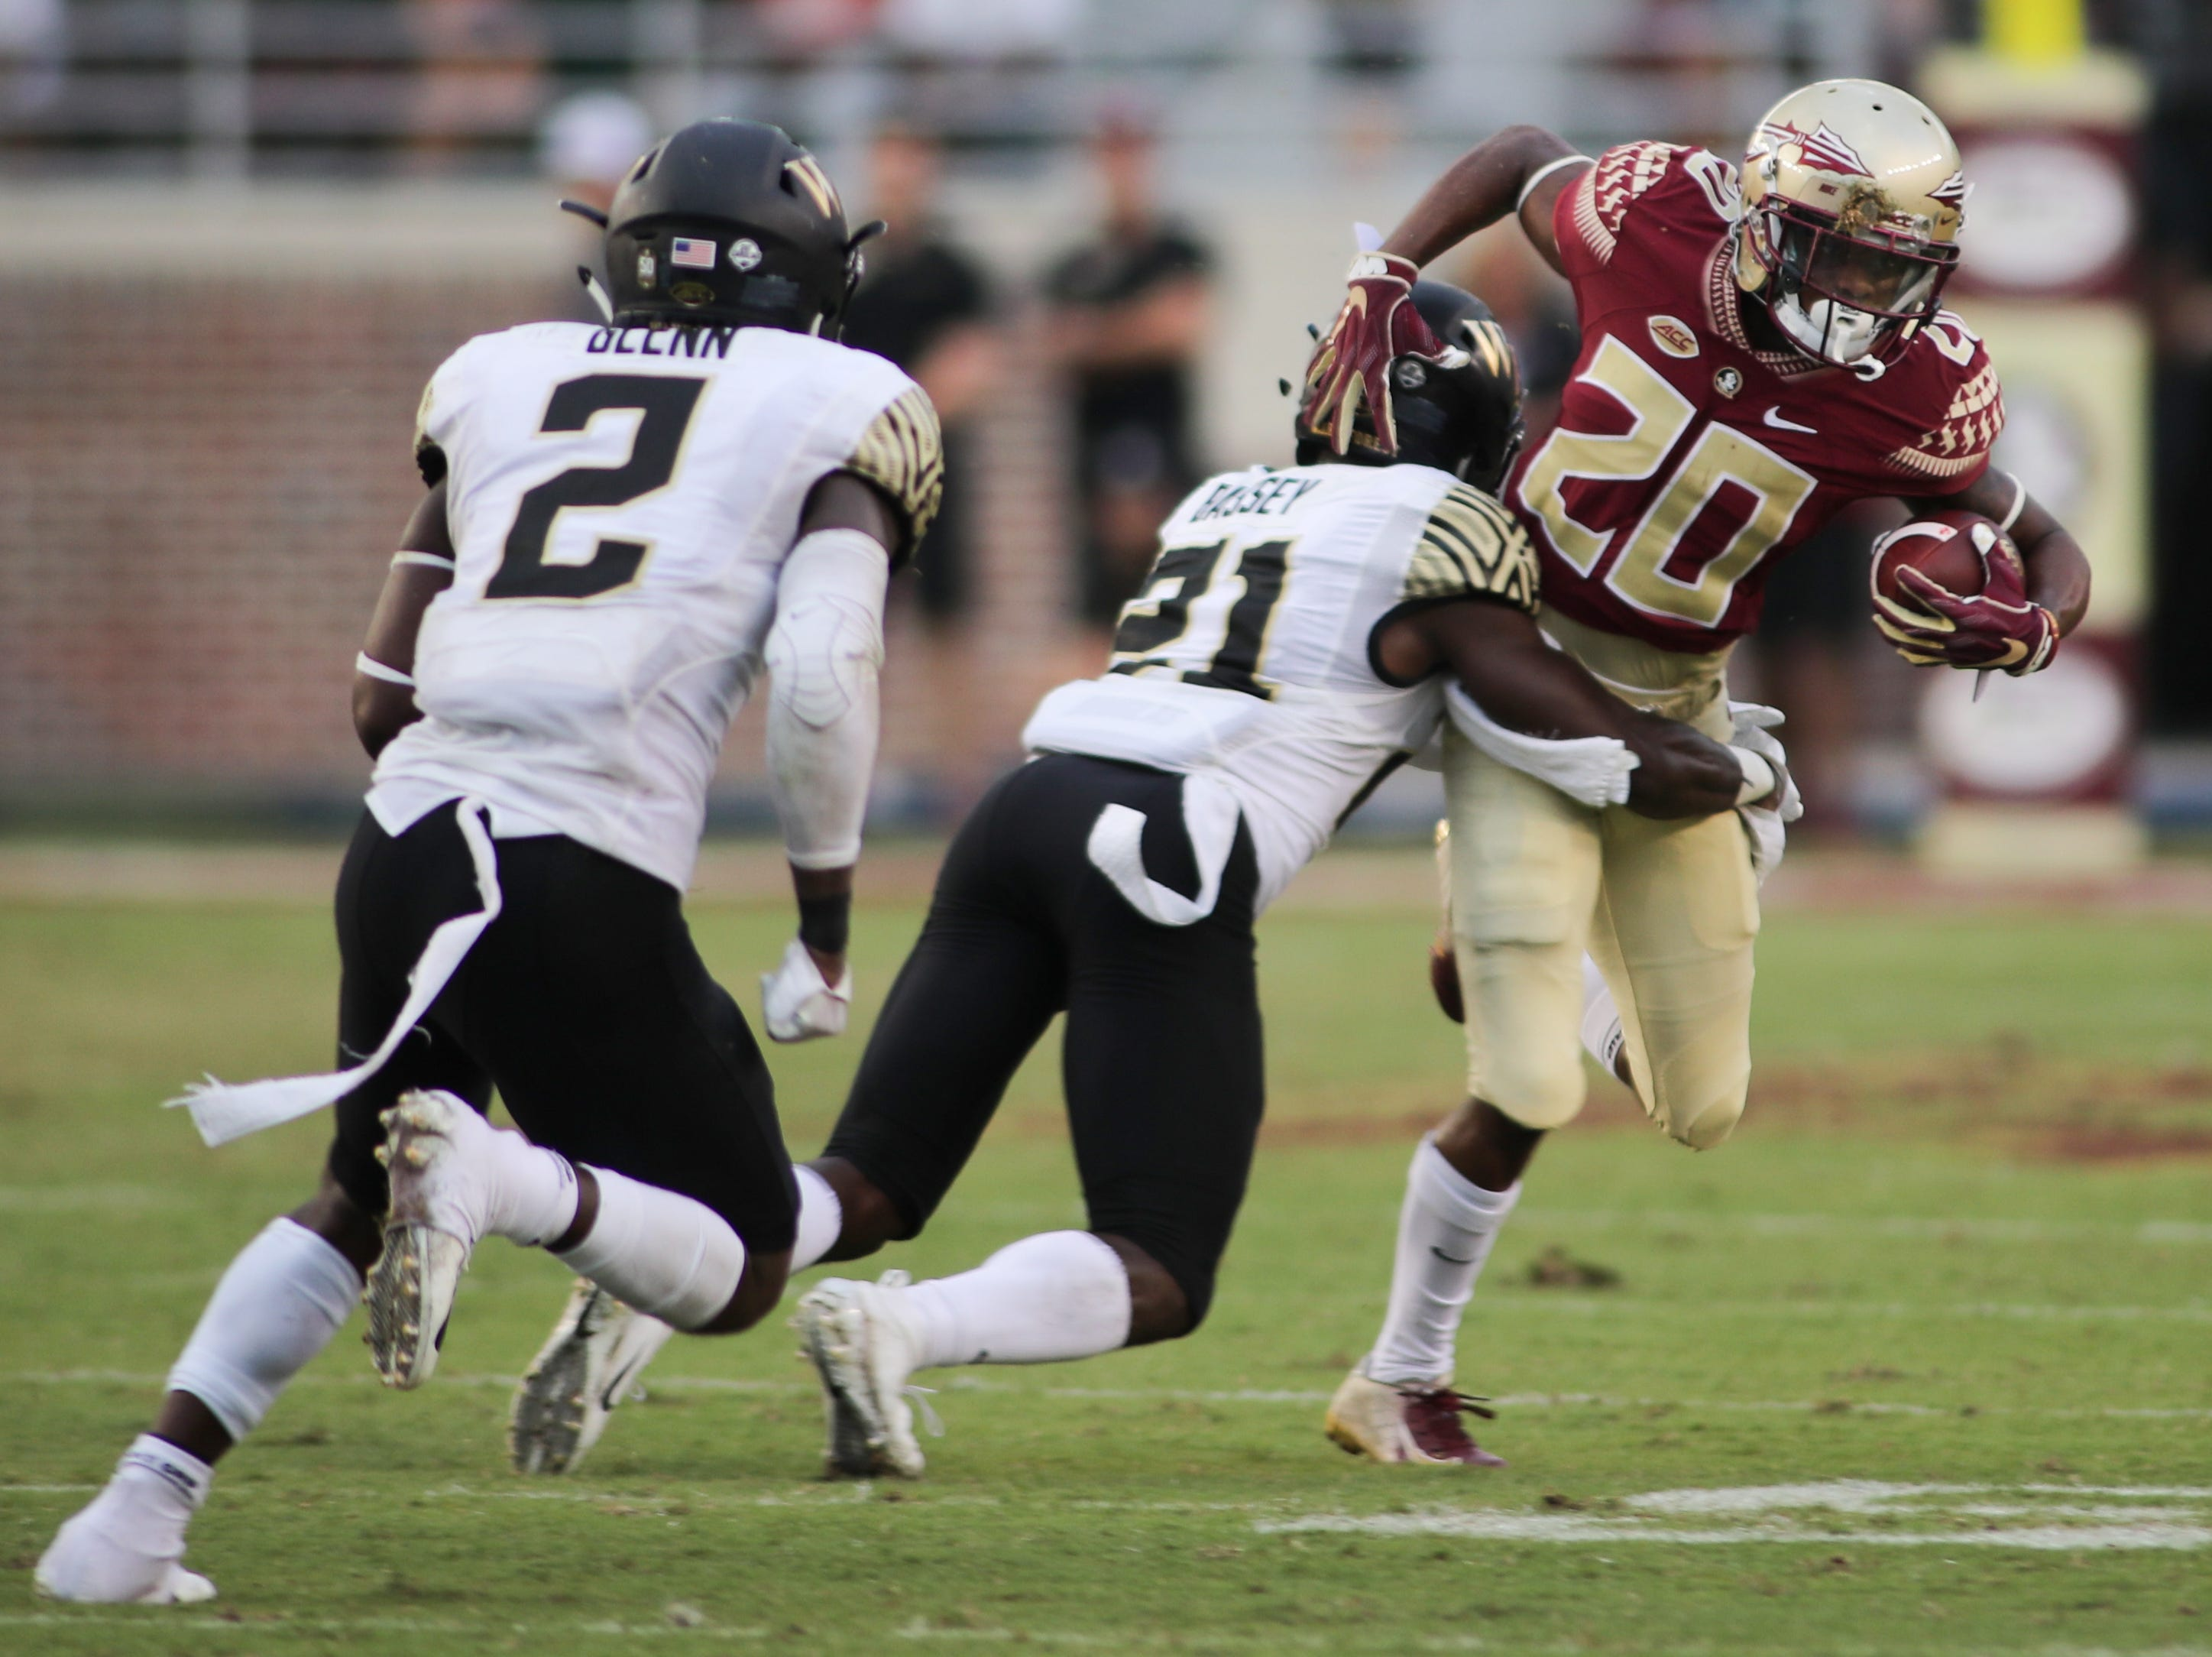 Florida State Seminoles wide receiver Keyshawn Helton (20) is tackled by Wake Forest Demon Deacons defensive back Essang Bassey (21) during FSU's homecoming game against Wake Forest at Doak S. Campbell Stadium Saturday, Oct. 20, 2018.